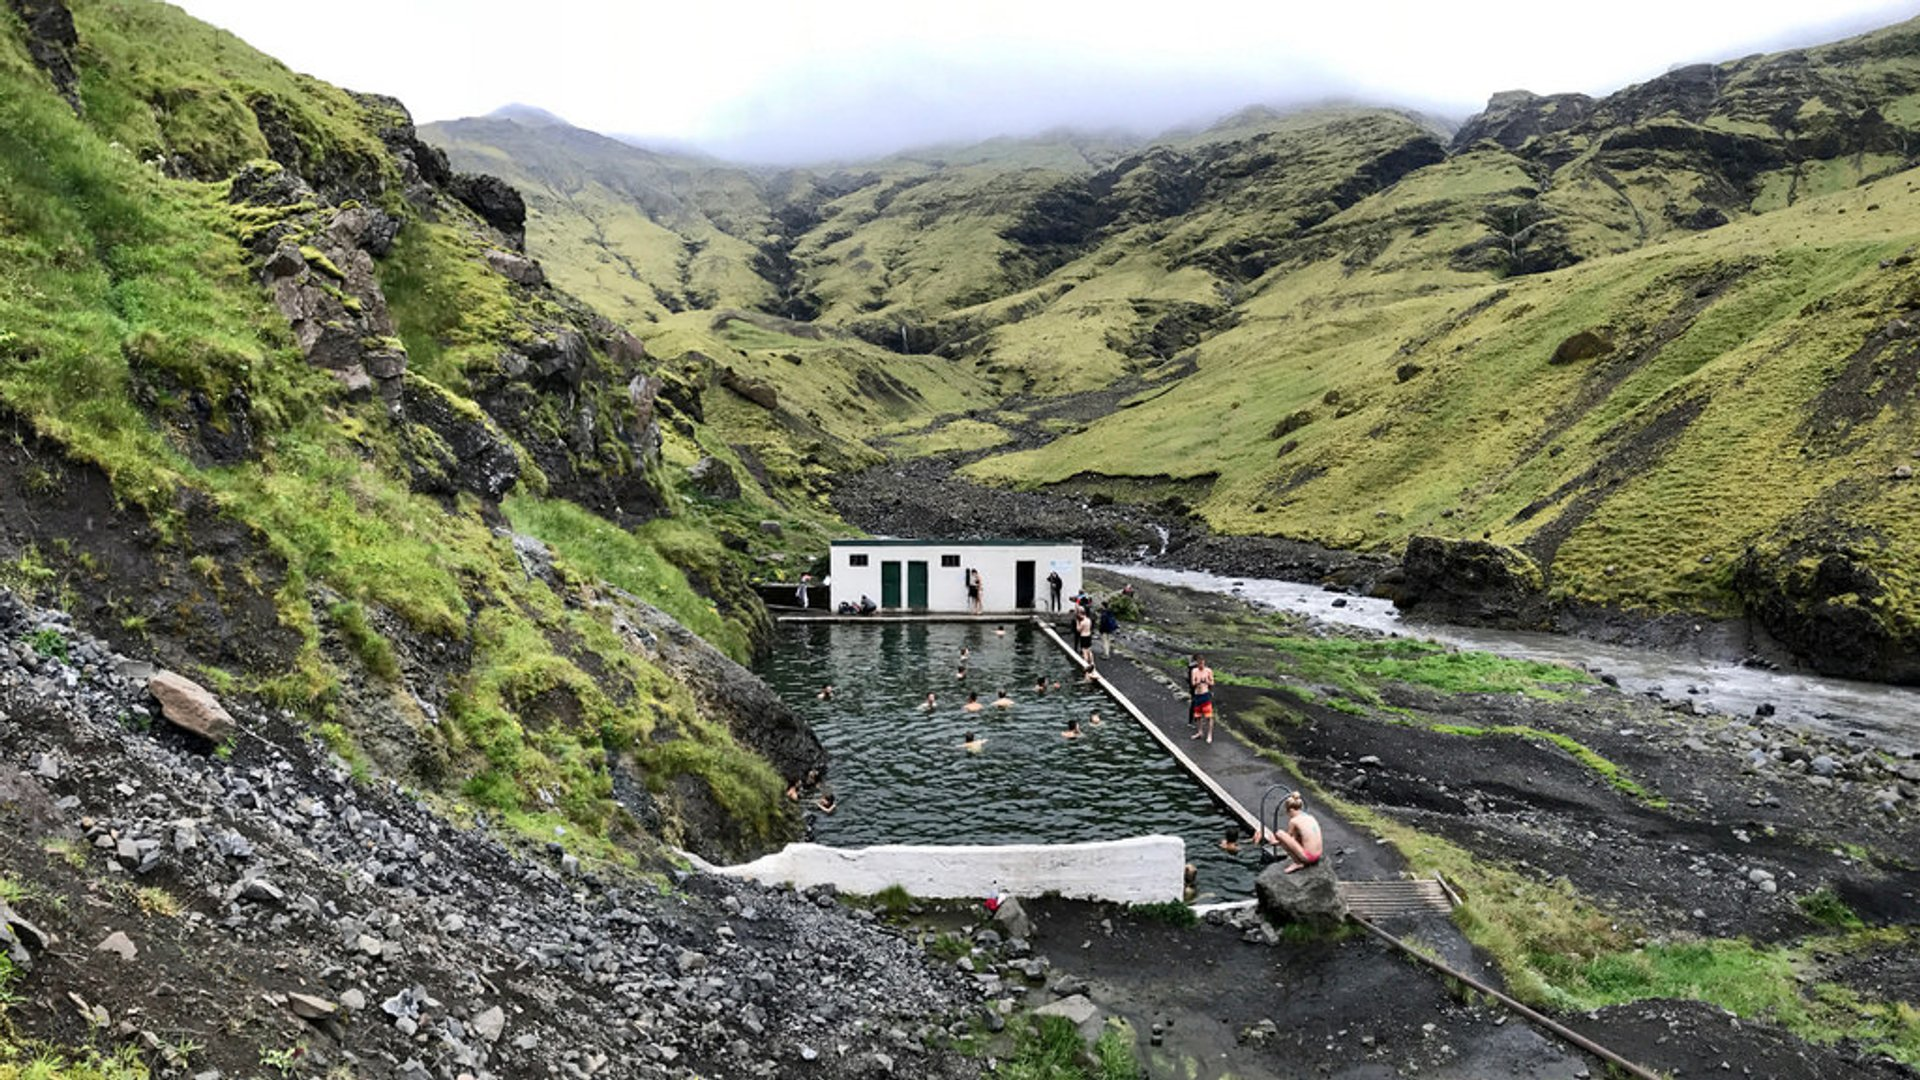 Seljavallalaug Swimming Pool in Iceland 2019 - Best Time